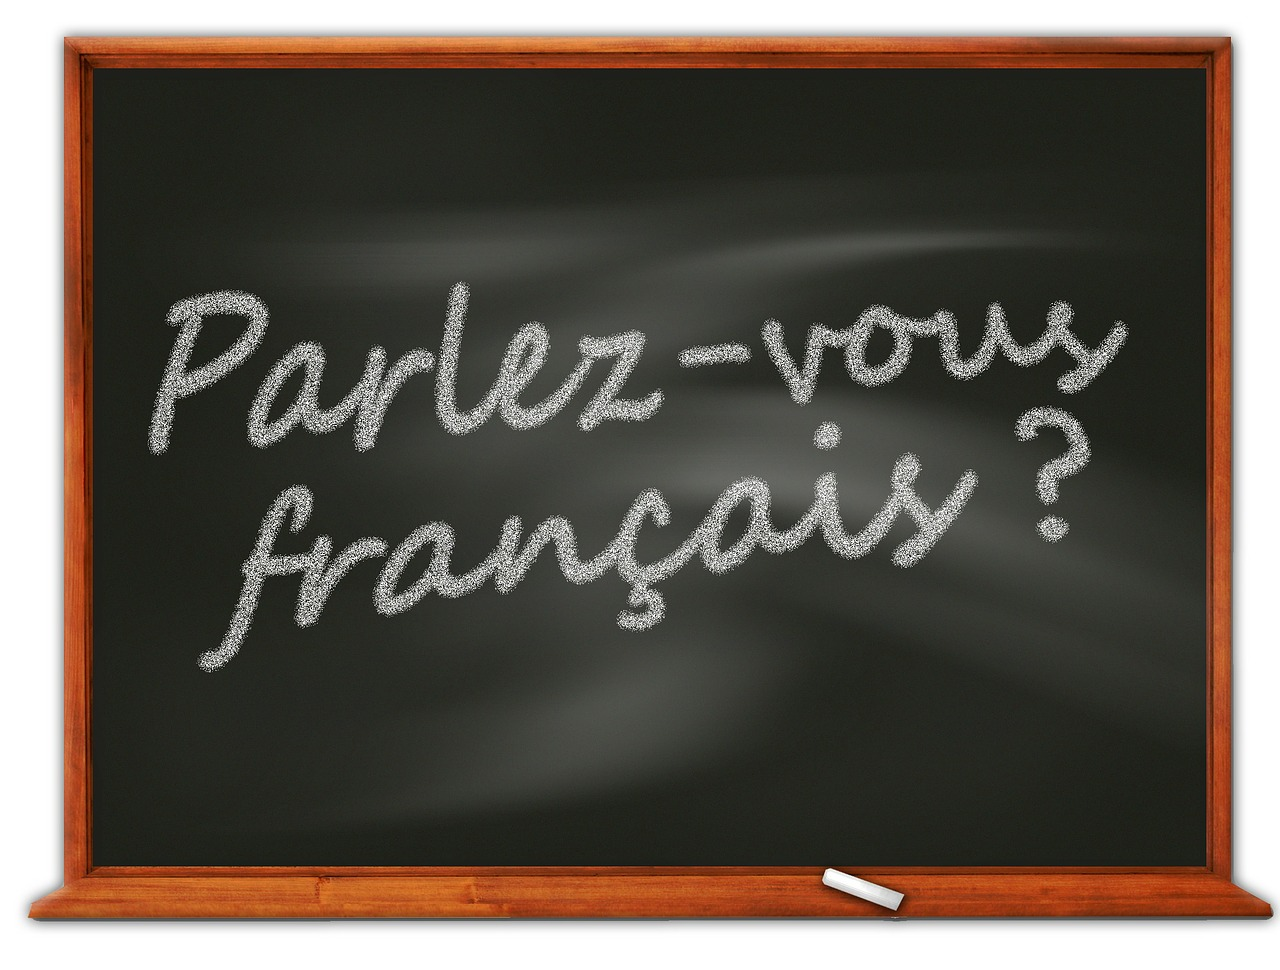 parlez vous francais written on blackboard